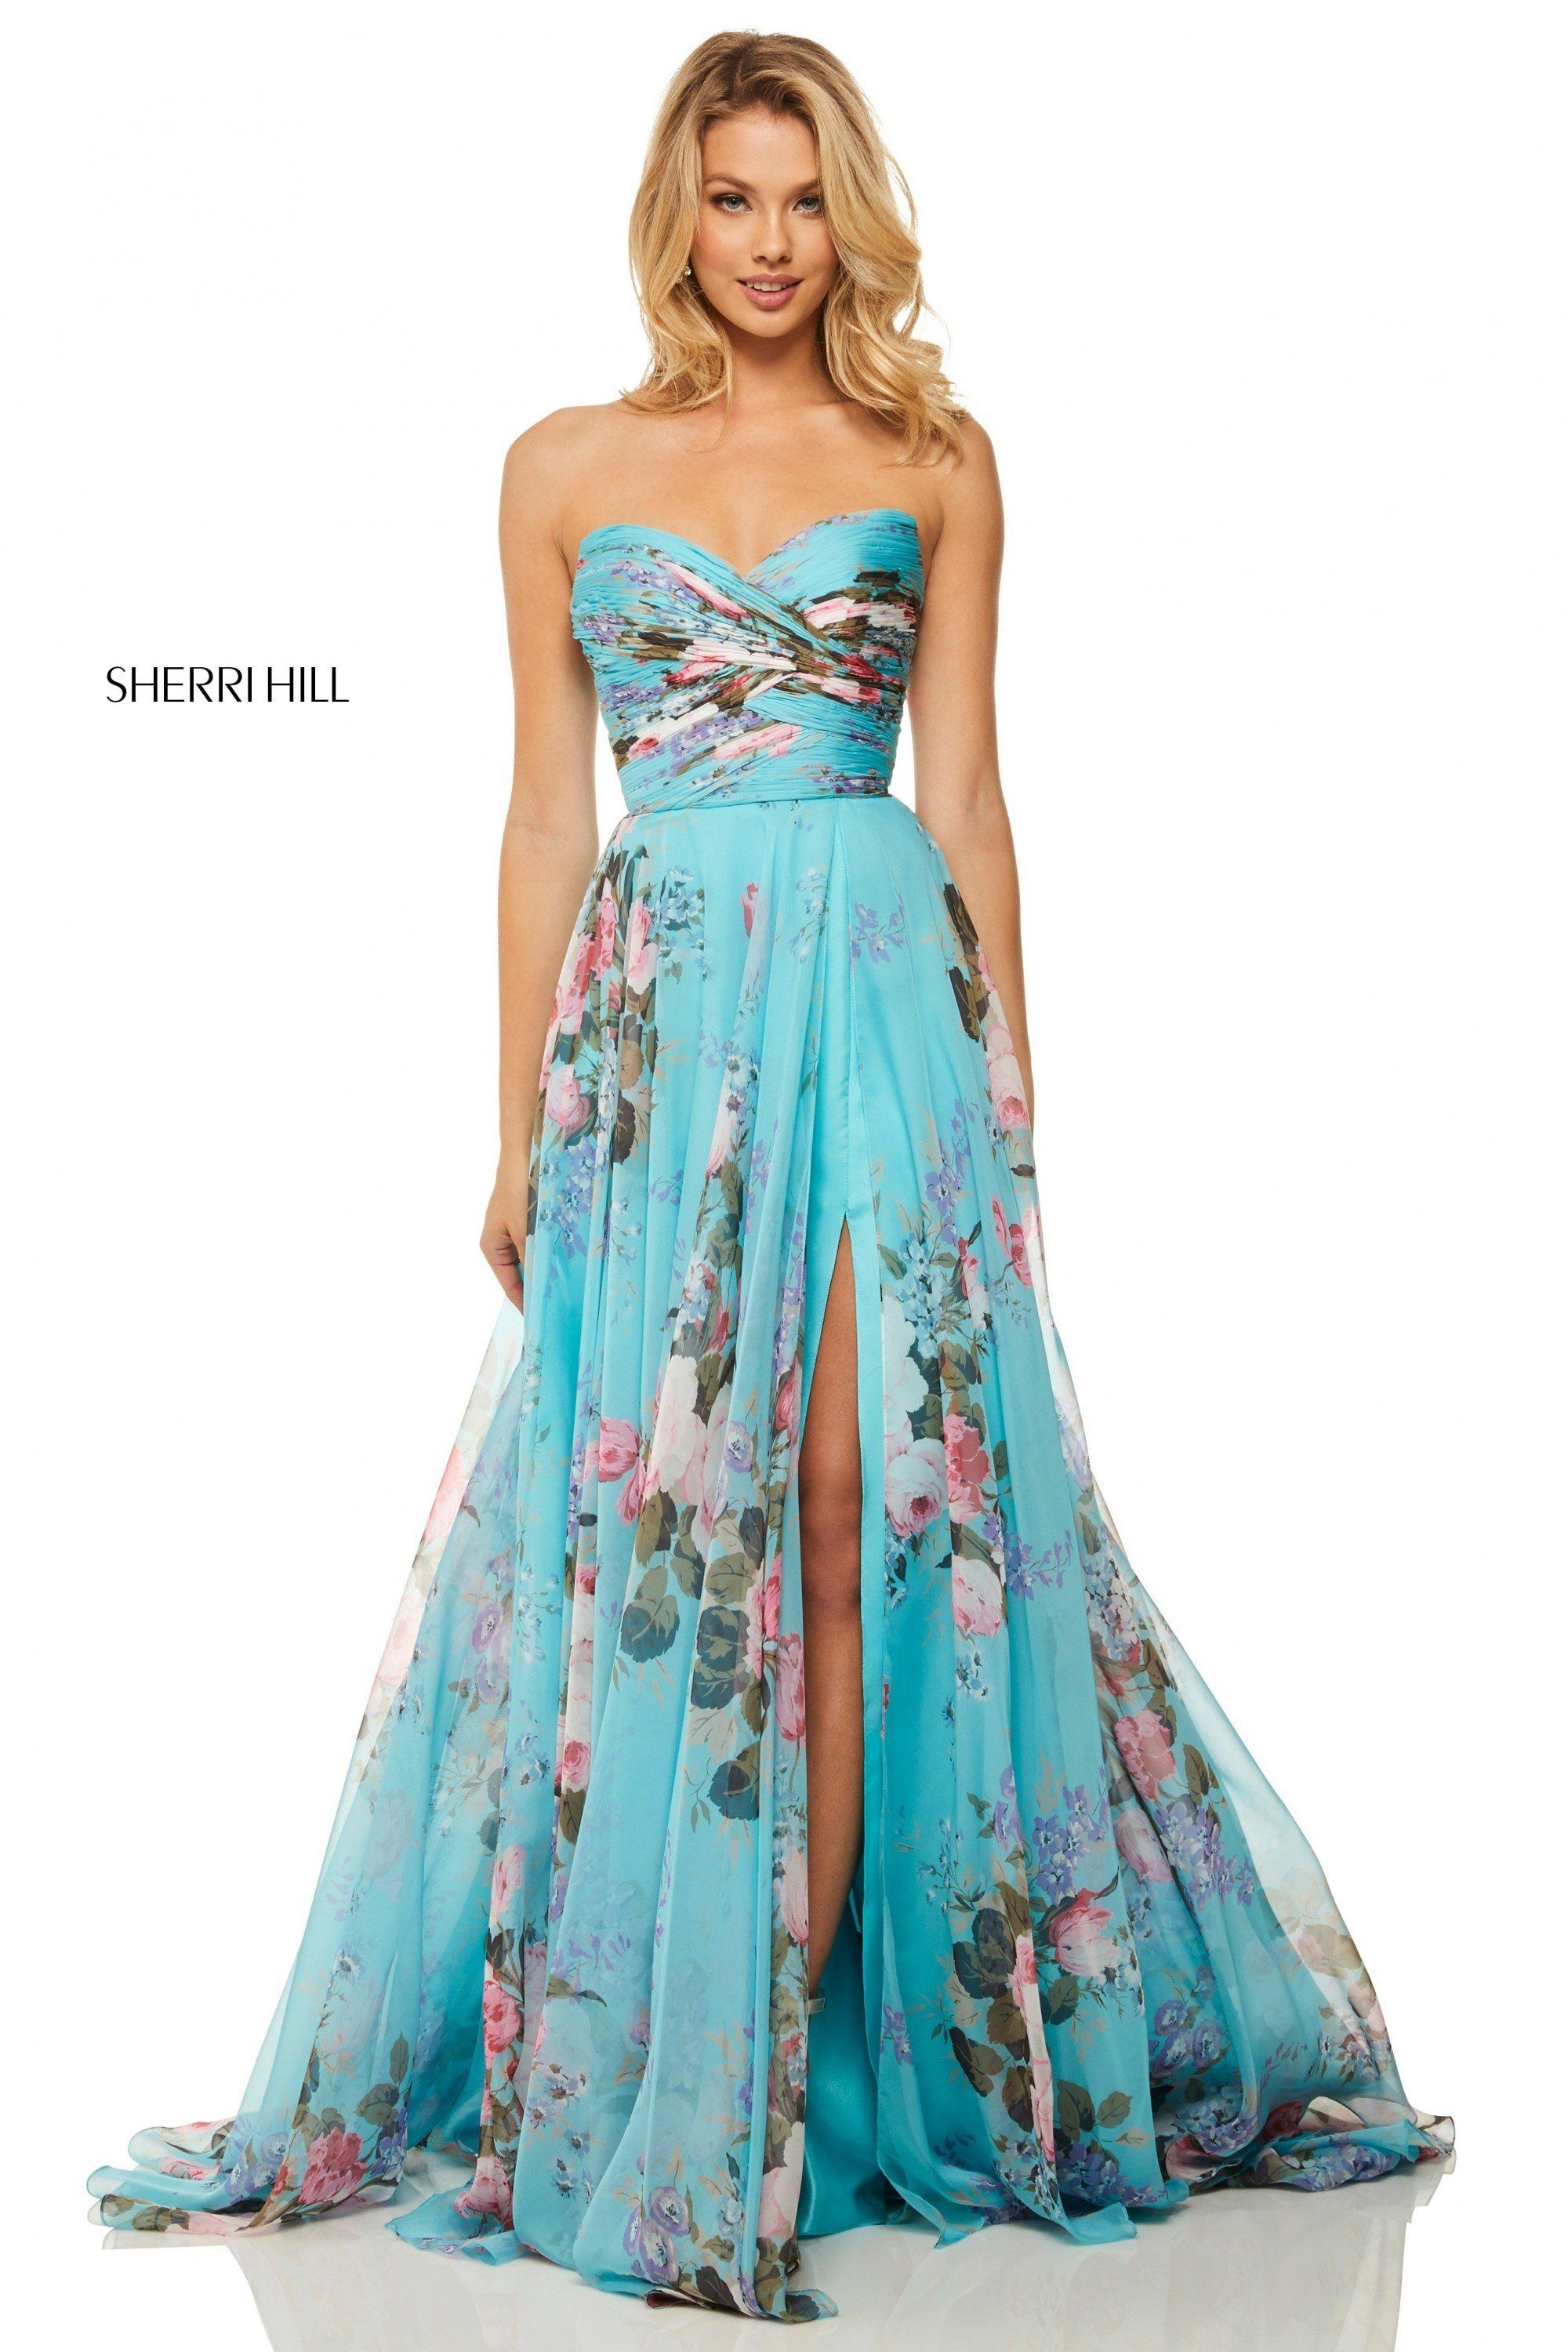 92af616d8887 Sherri Hill 52872 Chiffon Floral Print Gown - Chiffon strapless floral printed  gown with a slit and ruched bodice - Prom Dresses